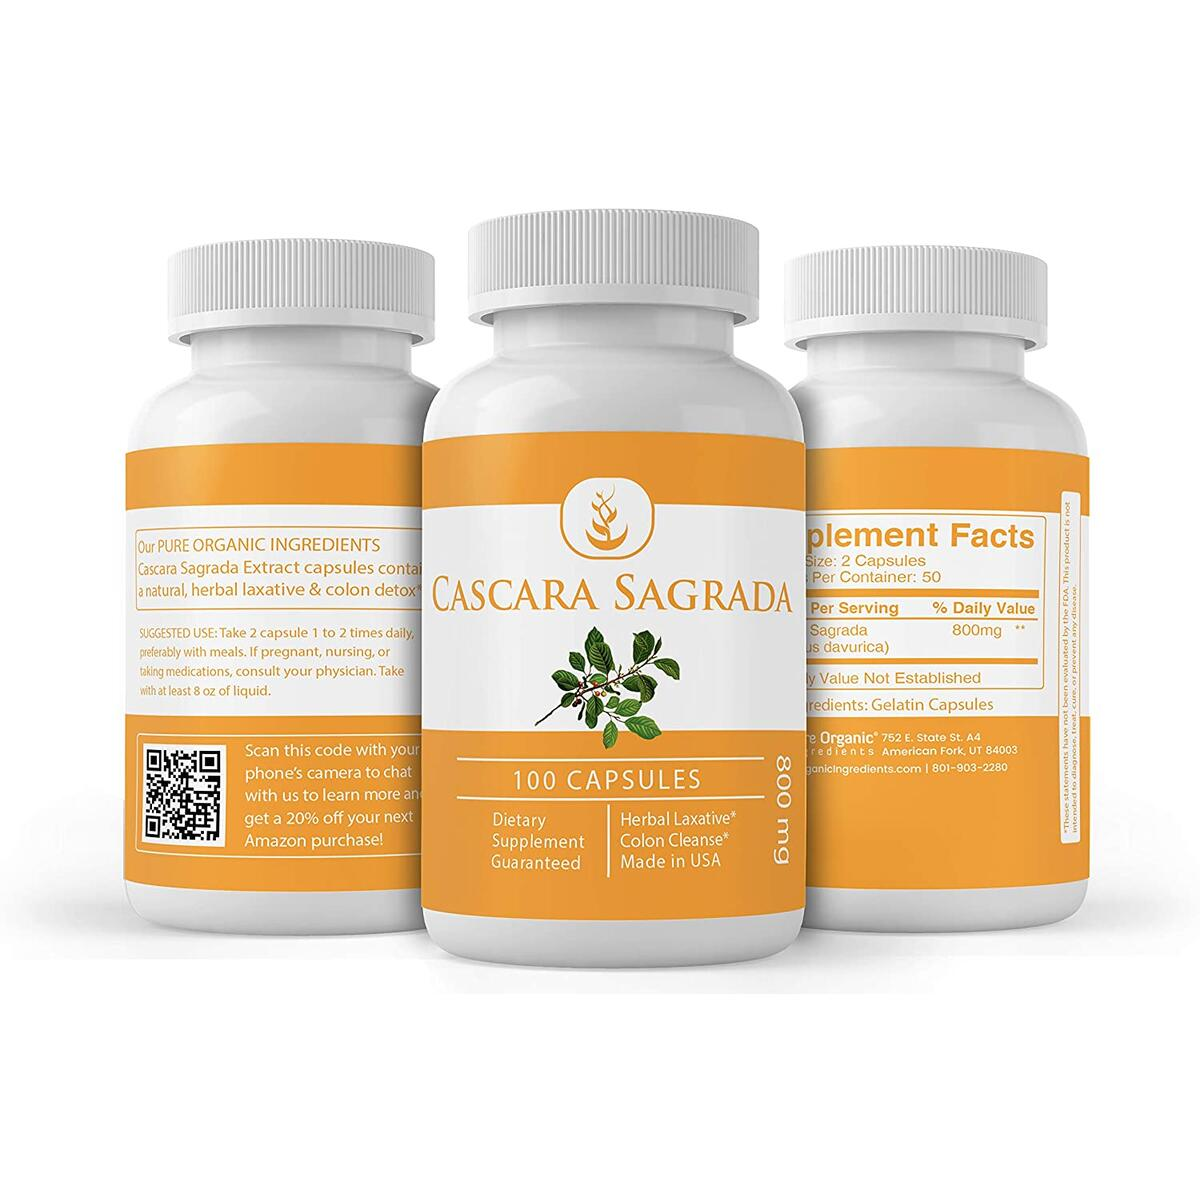 Natural Cascara Sagrada Extract, 100 Capsules, 800 mg Serving, Non-GMO & Gluten-Free, No Magnesium Stearate or Rice Filler, Lab-Tested for Purity, Made in USA